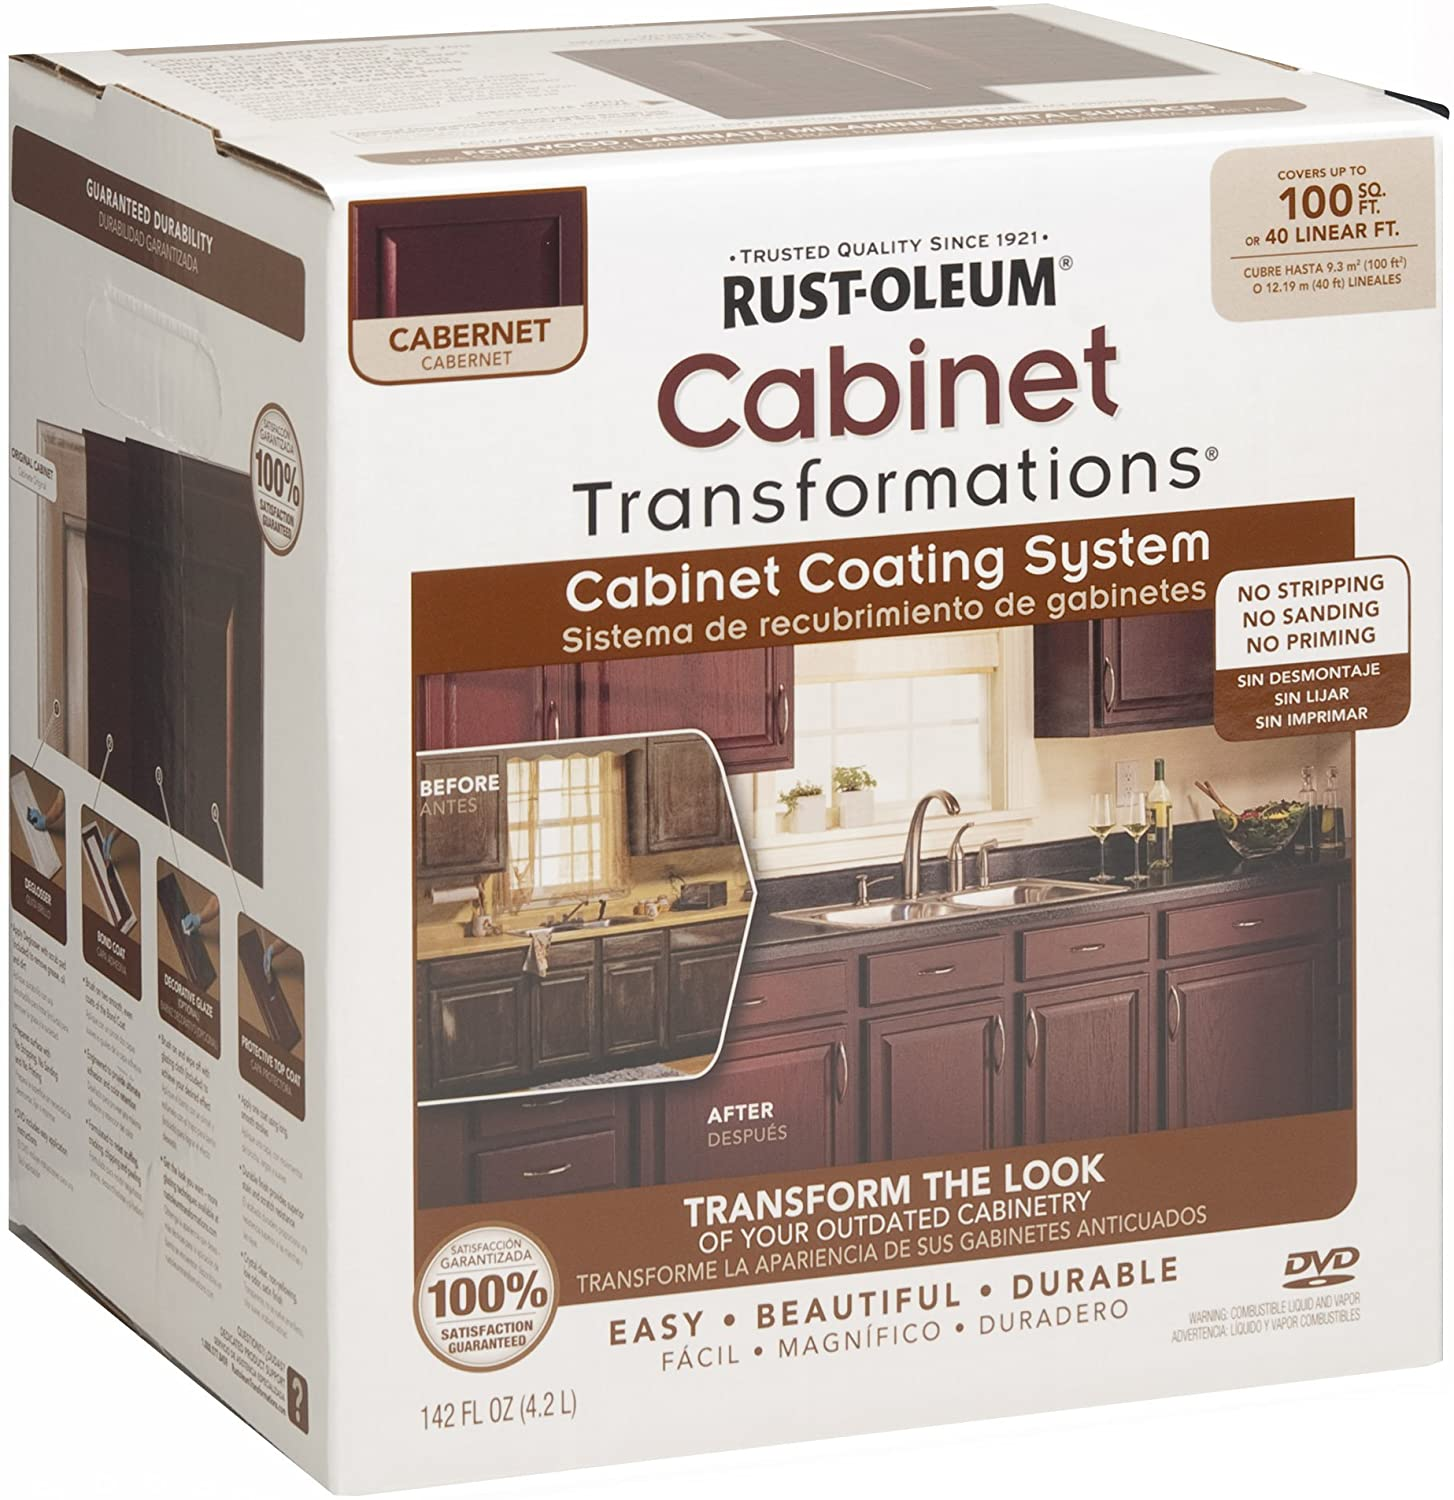 Rust-Oleum 263231 Cabinet Transformations review